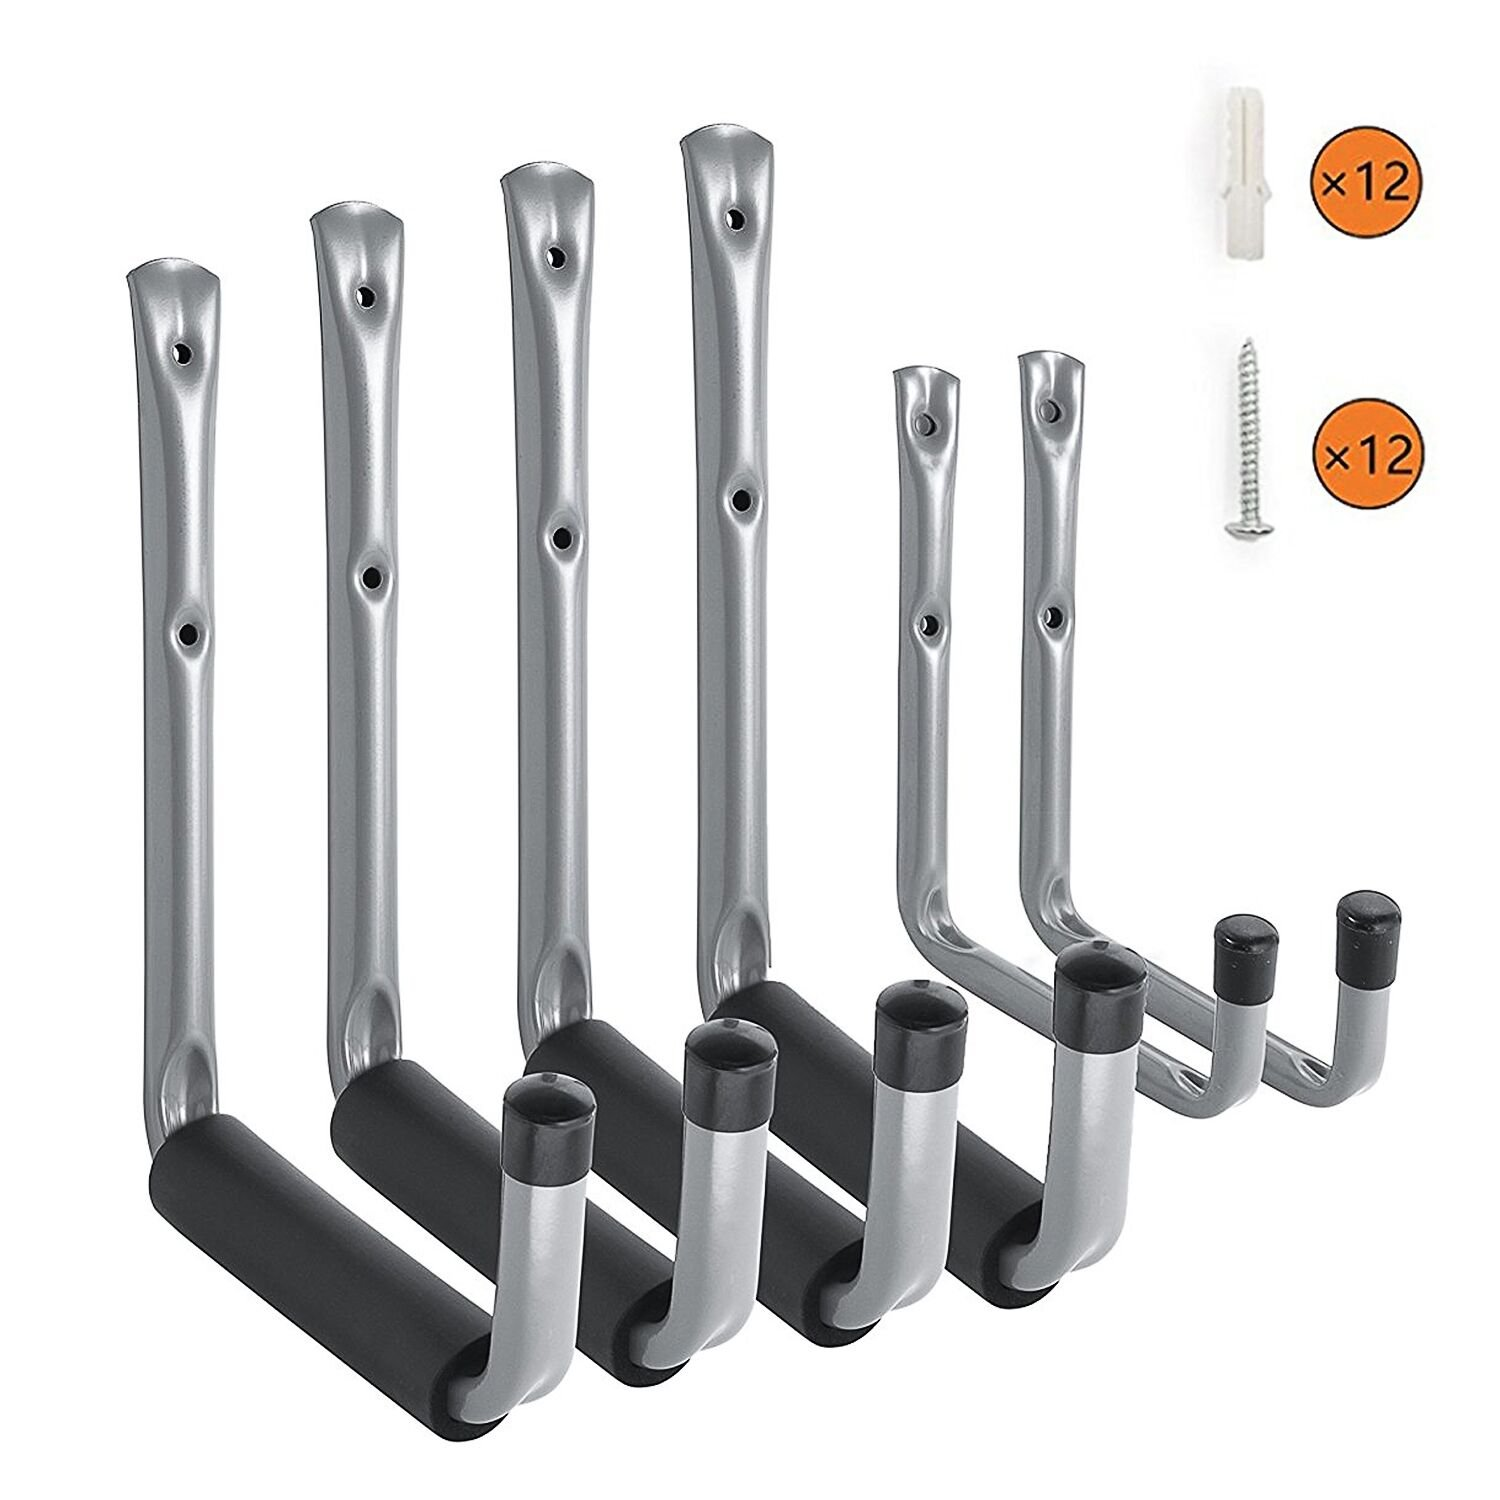 Heavy Duty Garage Storage Utility Hooks with Jumbo Arm, Wall Mount Garage Hanger & Organizer for Ladder Tool Chair Hose(6 Pack - Gray) Ihometech